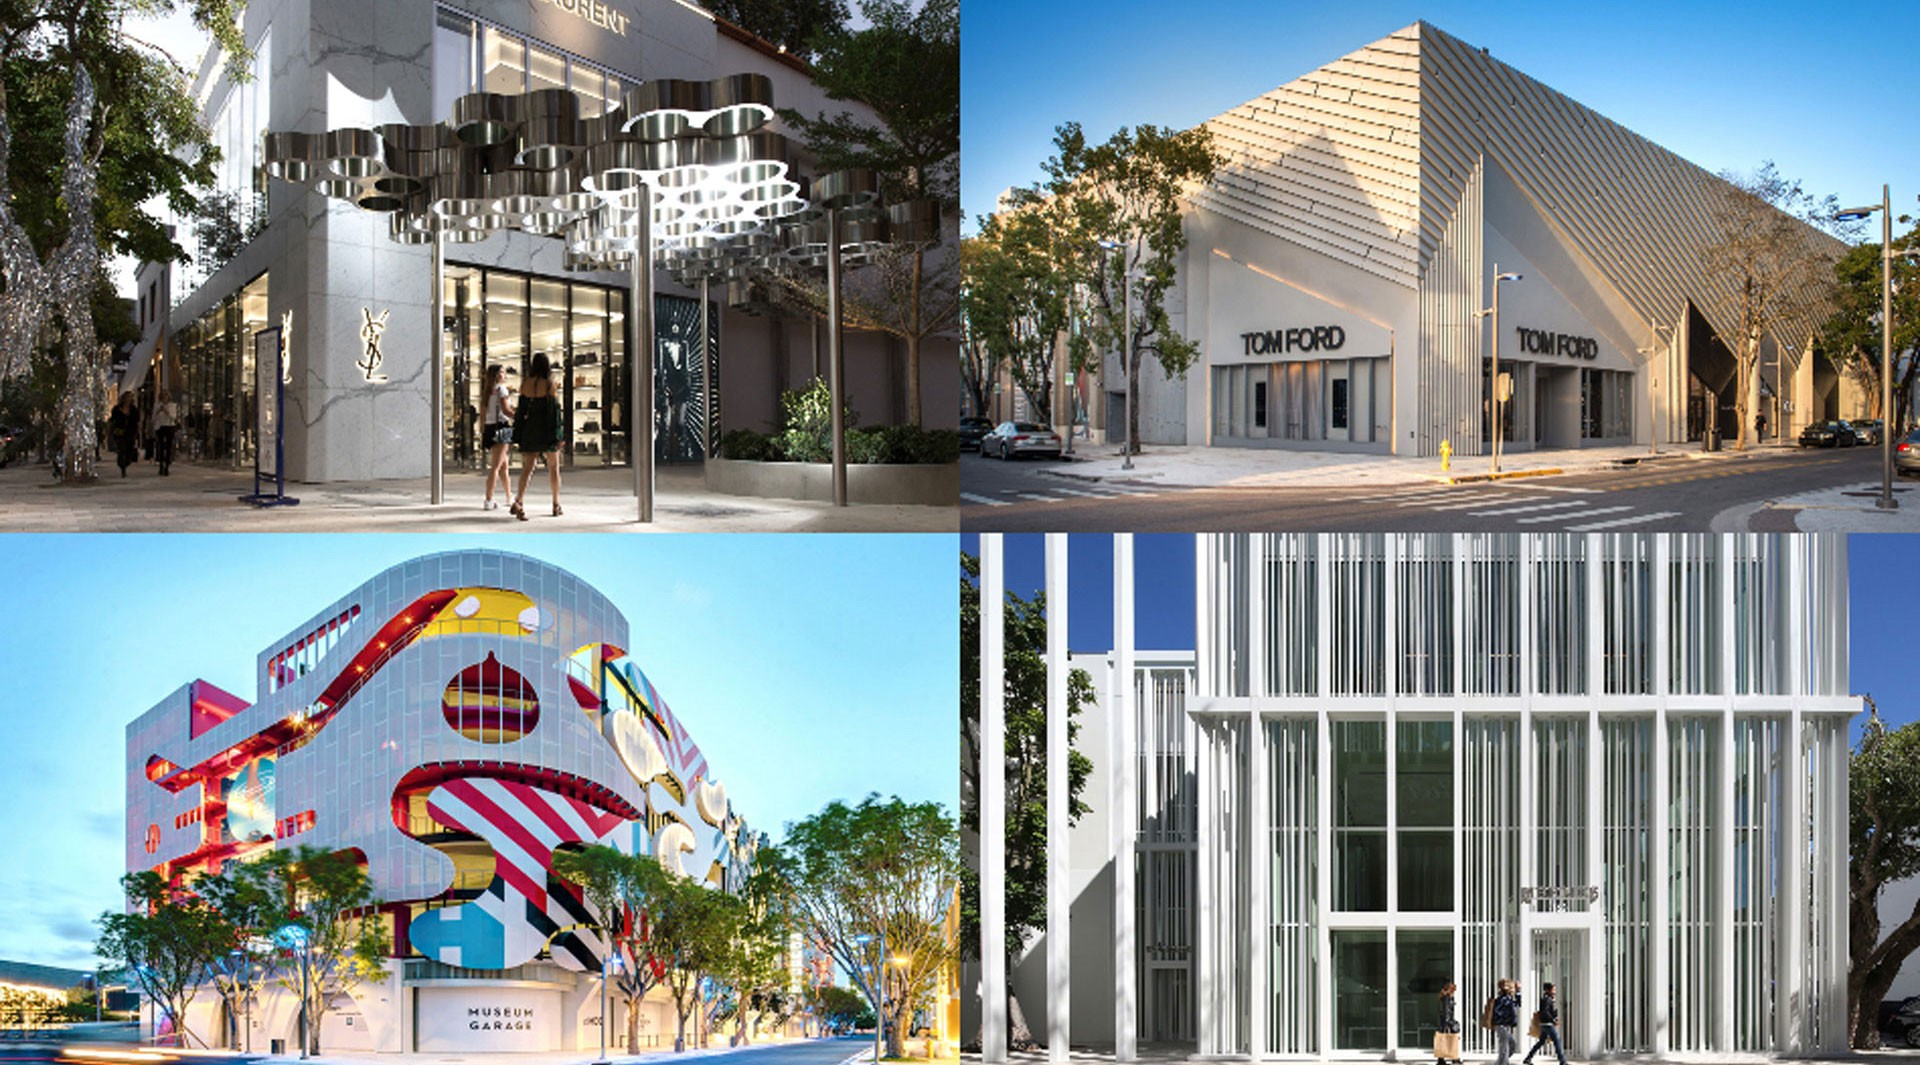 The Miami Design District's Most Instagram Worthy Spots